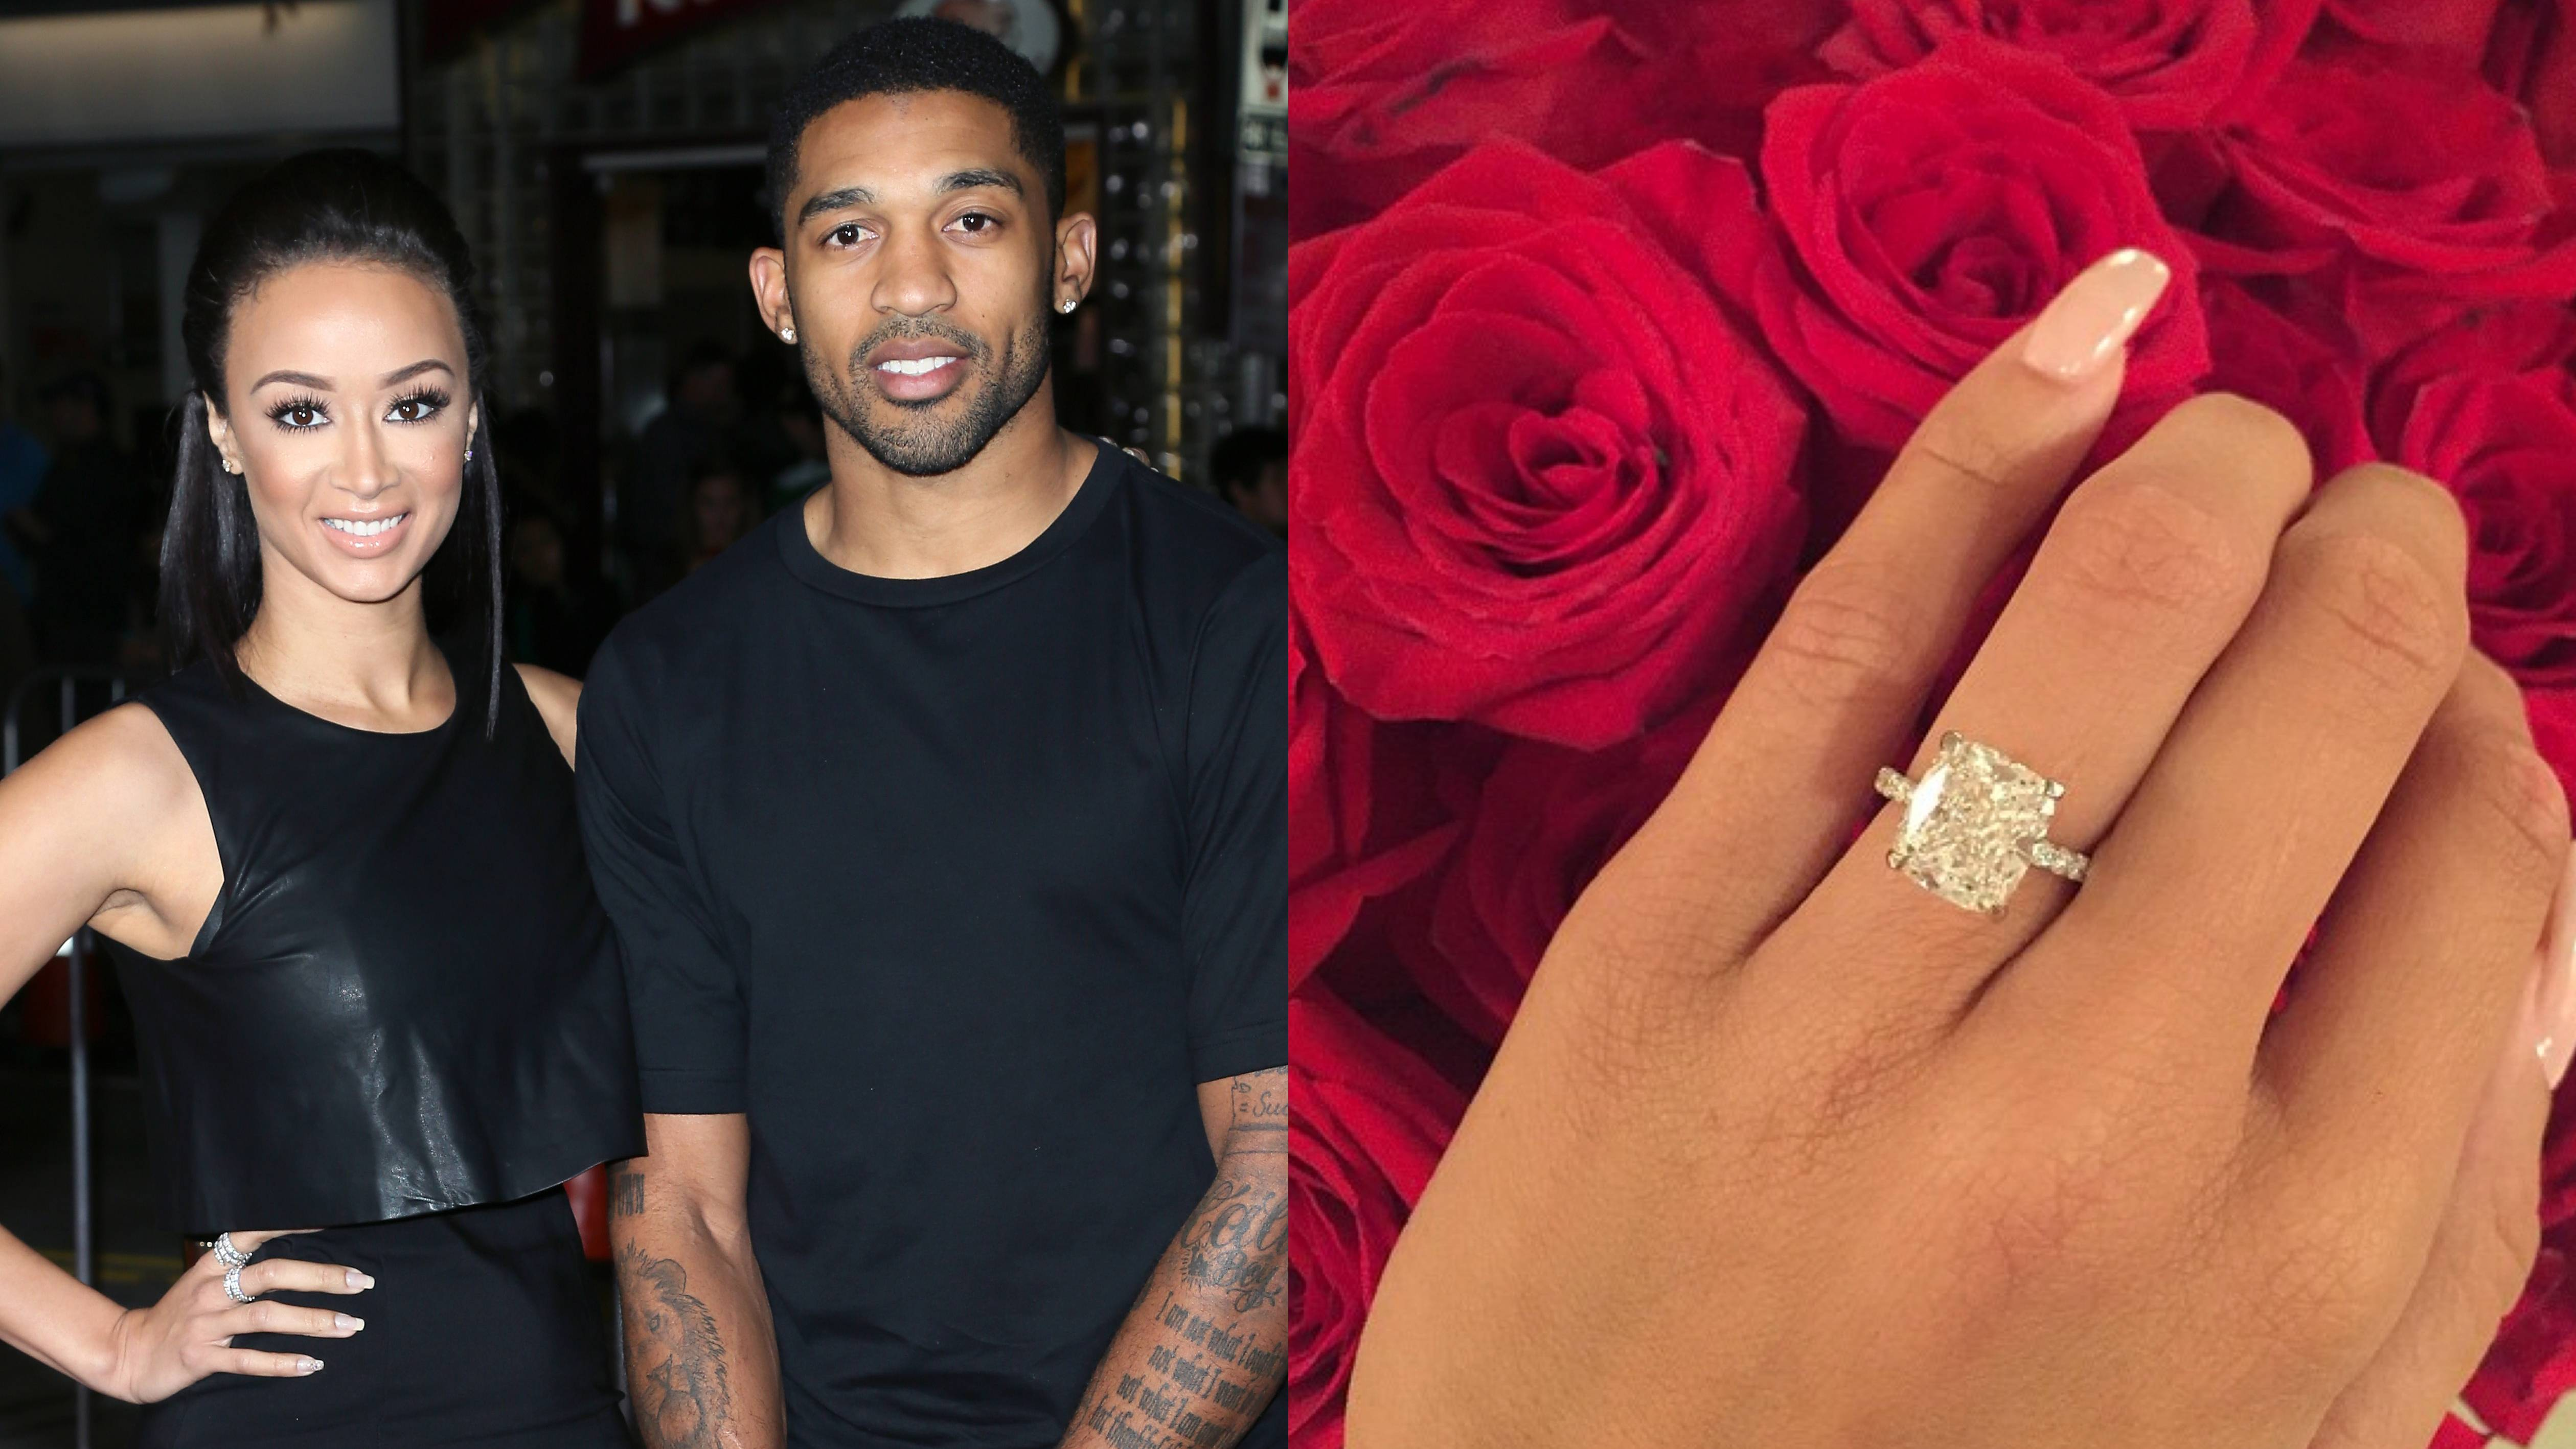 Draya Michele - The Basketball Wives LA star is heading down the aisle! Her longtime beau, Dallas Cowboys cornerback Oscar Scandrick, popped the question on June 18 in Los Angeles with a 6 carat, cushion-cut diamond designed by Jasons of Beverly Hills. Nice!  (Photos from Left: David Livingston/Getty Images, Draya Michele via Instagram)